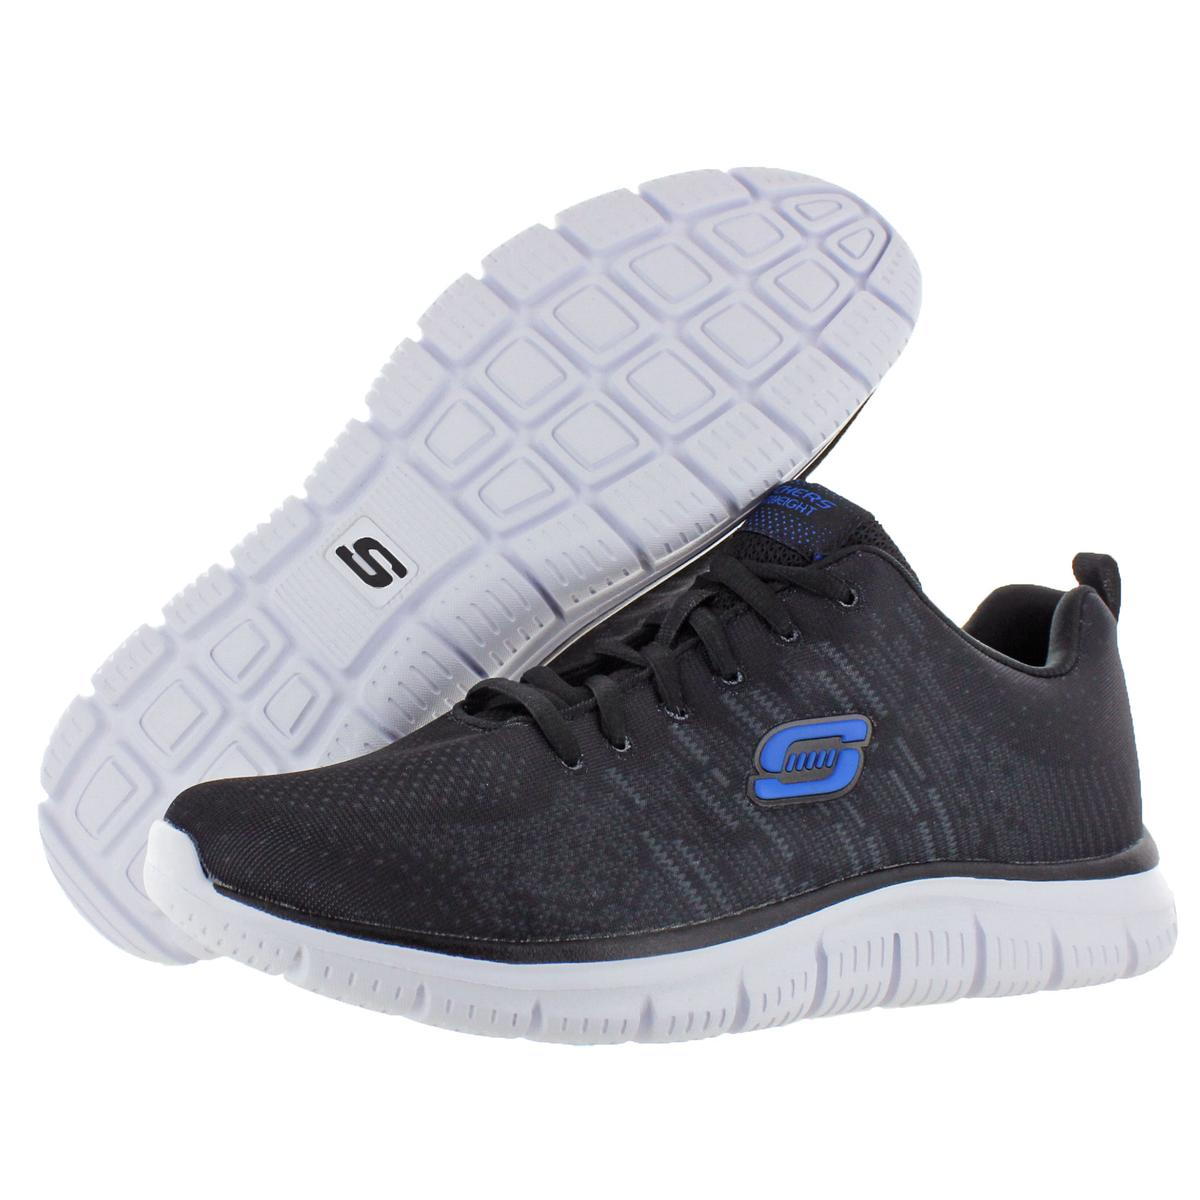 Details about Skechers Mens Track Insinuations C Lightweight Running Shoes Sneakers BHFO 0958